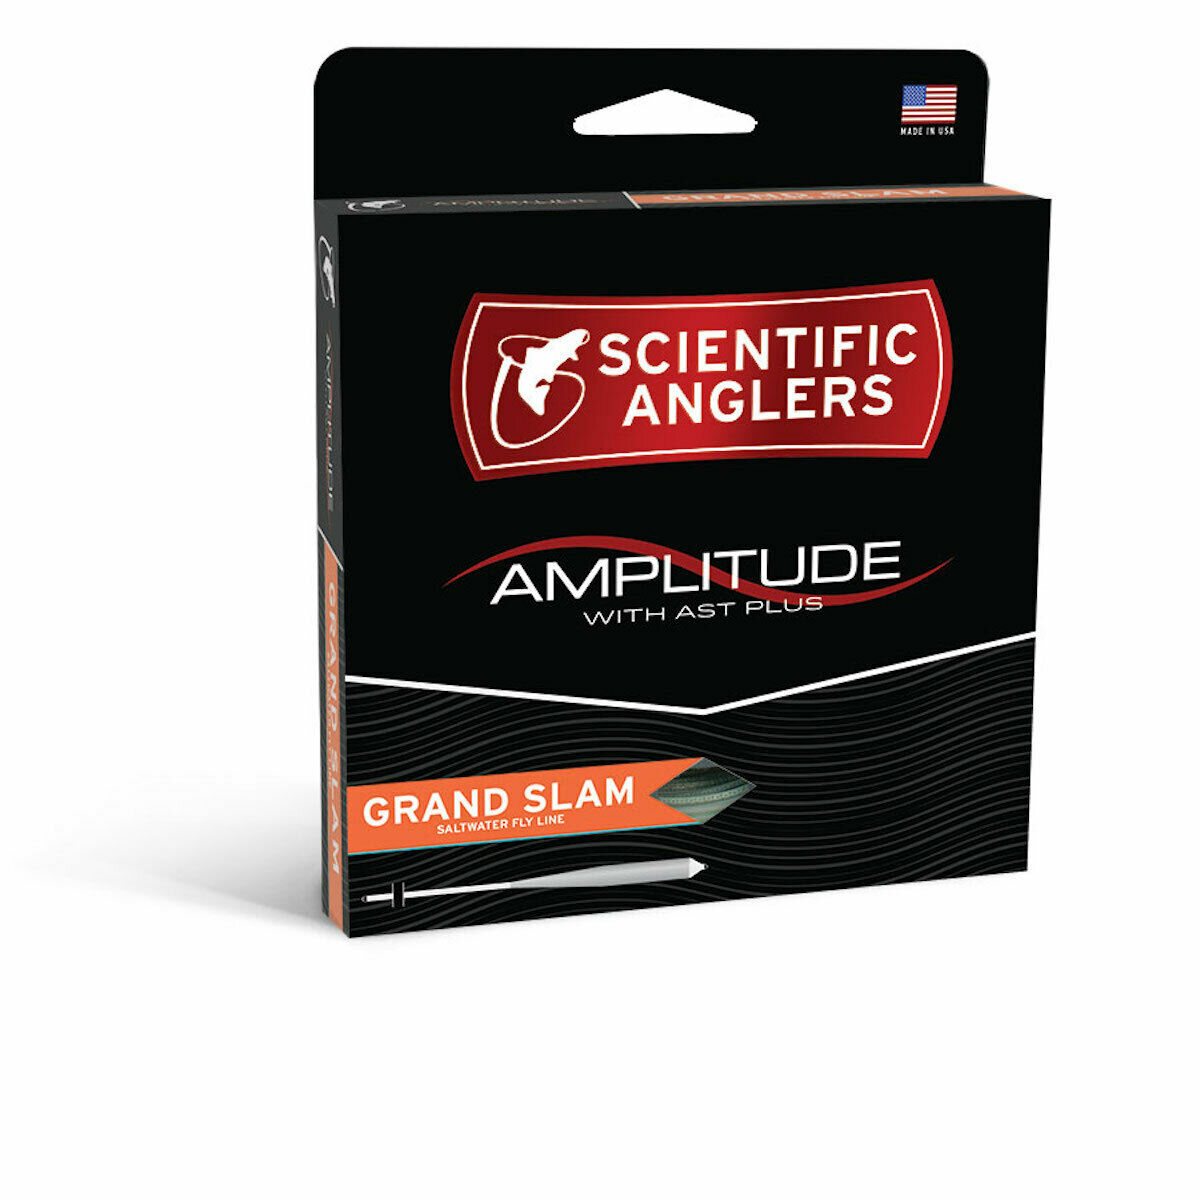 Scientific Anglers Amplitude Grand Slam WF11F Fly Line weight WF11F